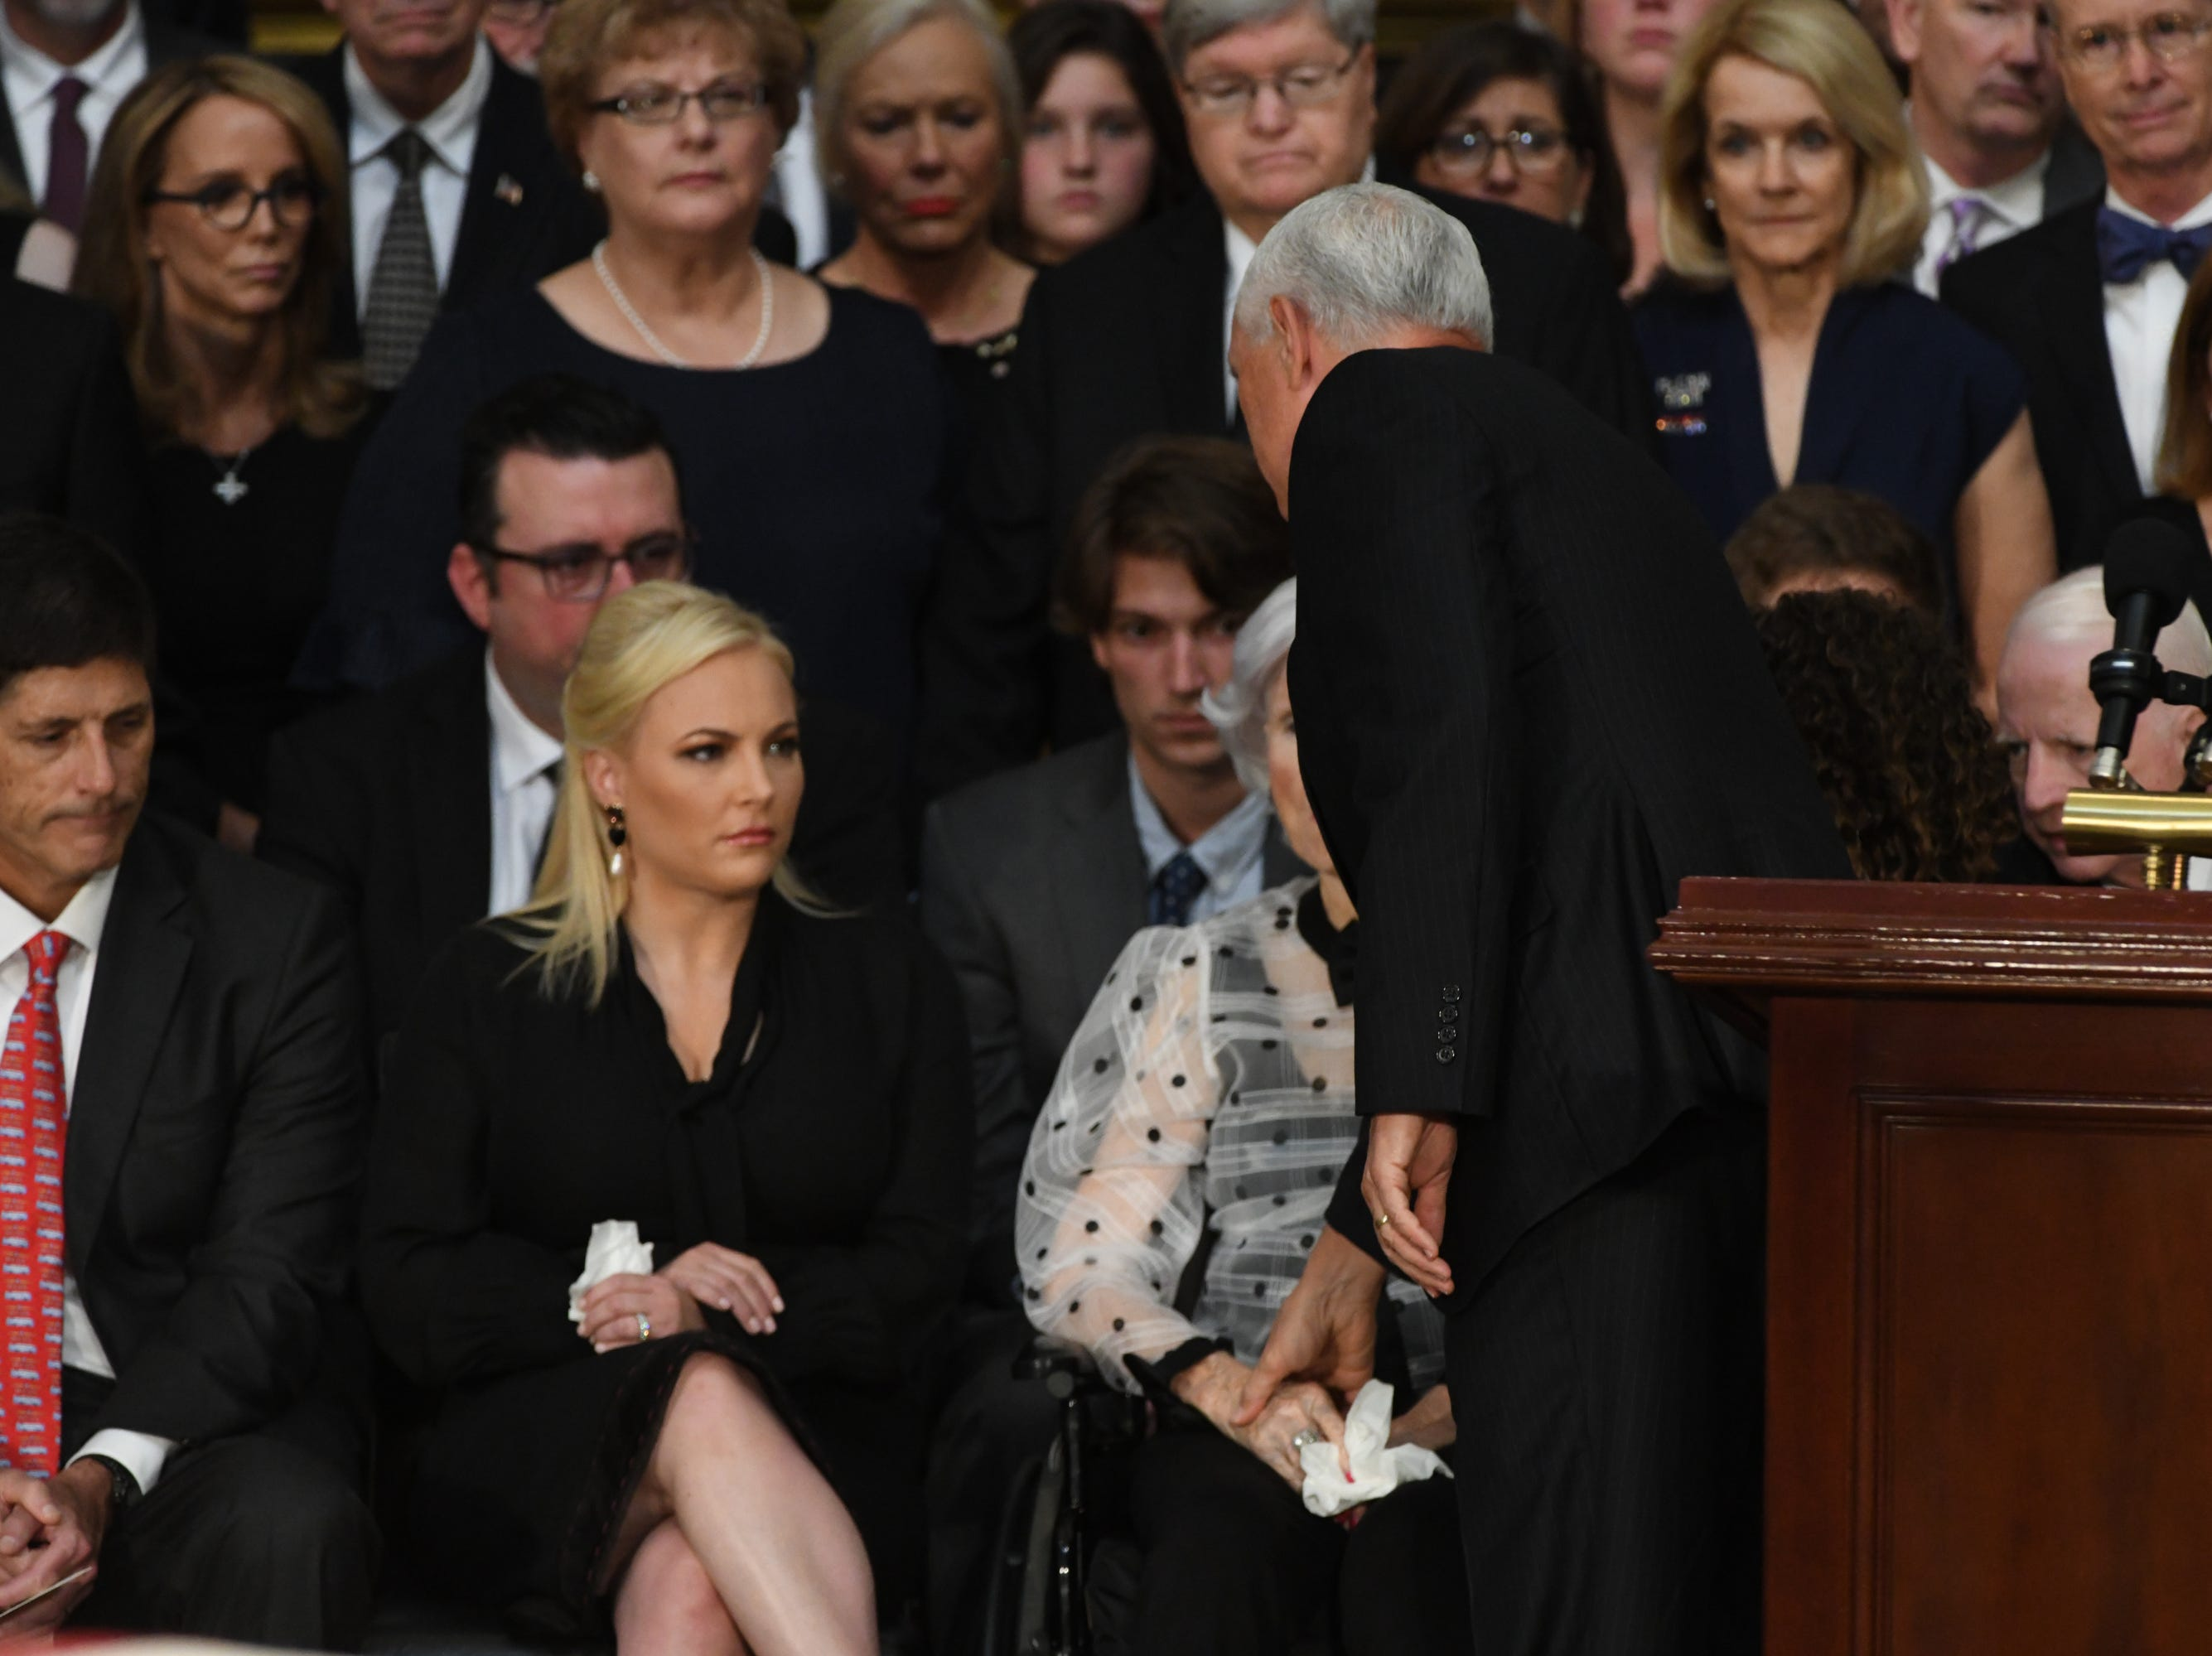 8/31/18 11:16:56 AM -- Washington, DC, U.S.A  -- Vice President Mike Pence greets the McCain family as the body of John McCain lies in state at the U.S. Capitol in Washington on Aug. 31, 2018 in Washington. Sen. McCain died on Aug. 25. --    Photo by Jasper Colt, USA TODAY Staff